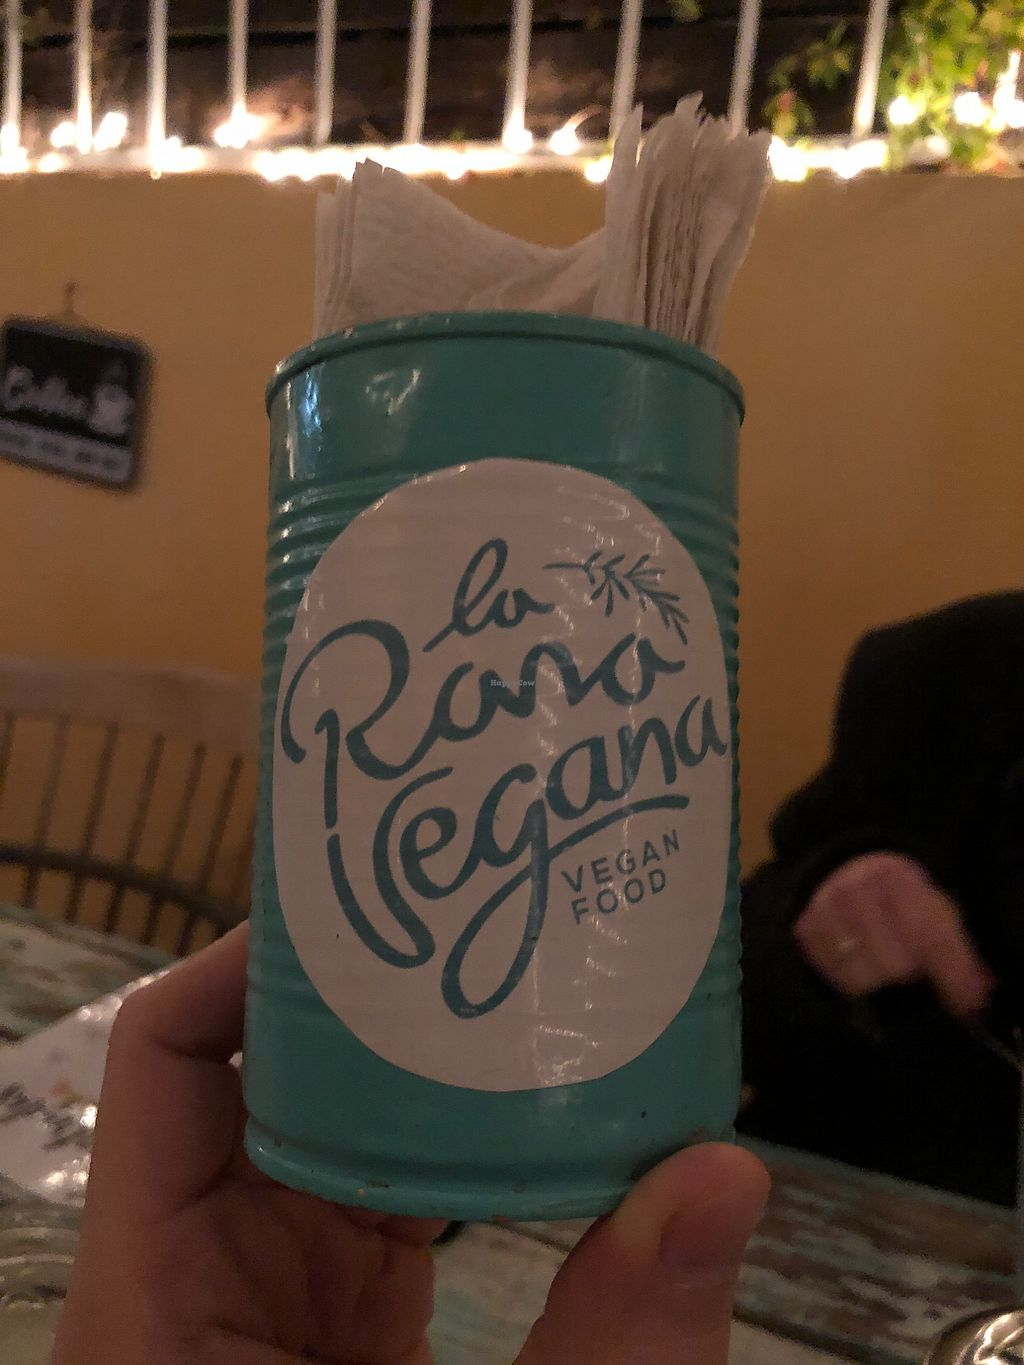 """Photo of La Rana Vegana  by <a href=""""/members/profile/RyanPamplin"""">RyanPamplin</a> <br/>I'm in love with this place! <br/> January 21, 2018  - <a href='/contact/abuse/image/83802/349495'>Report</a>"""